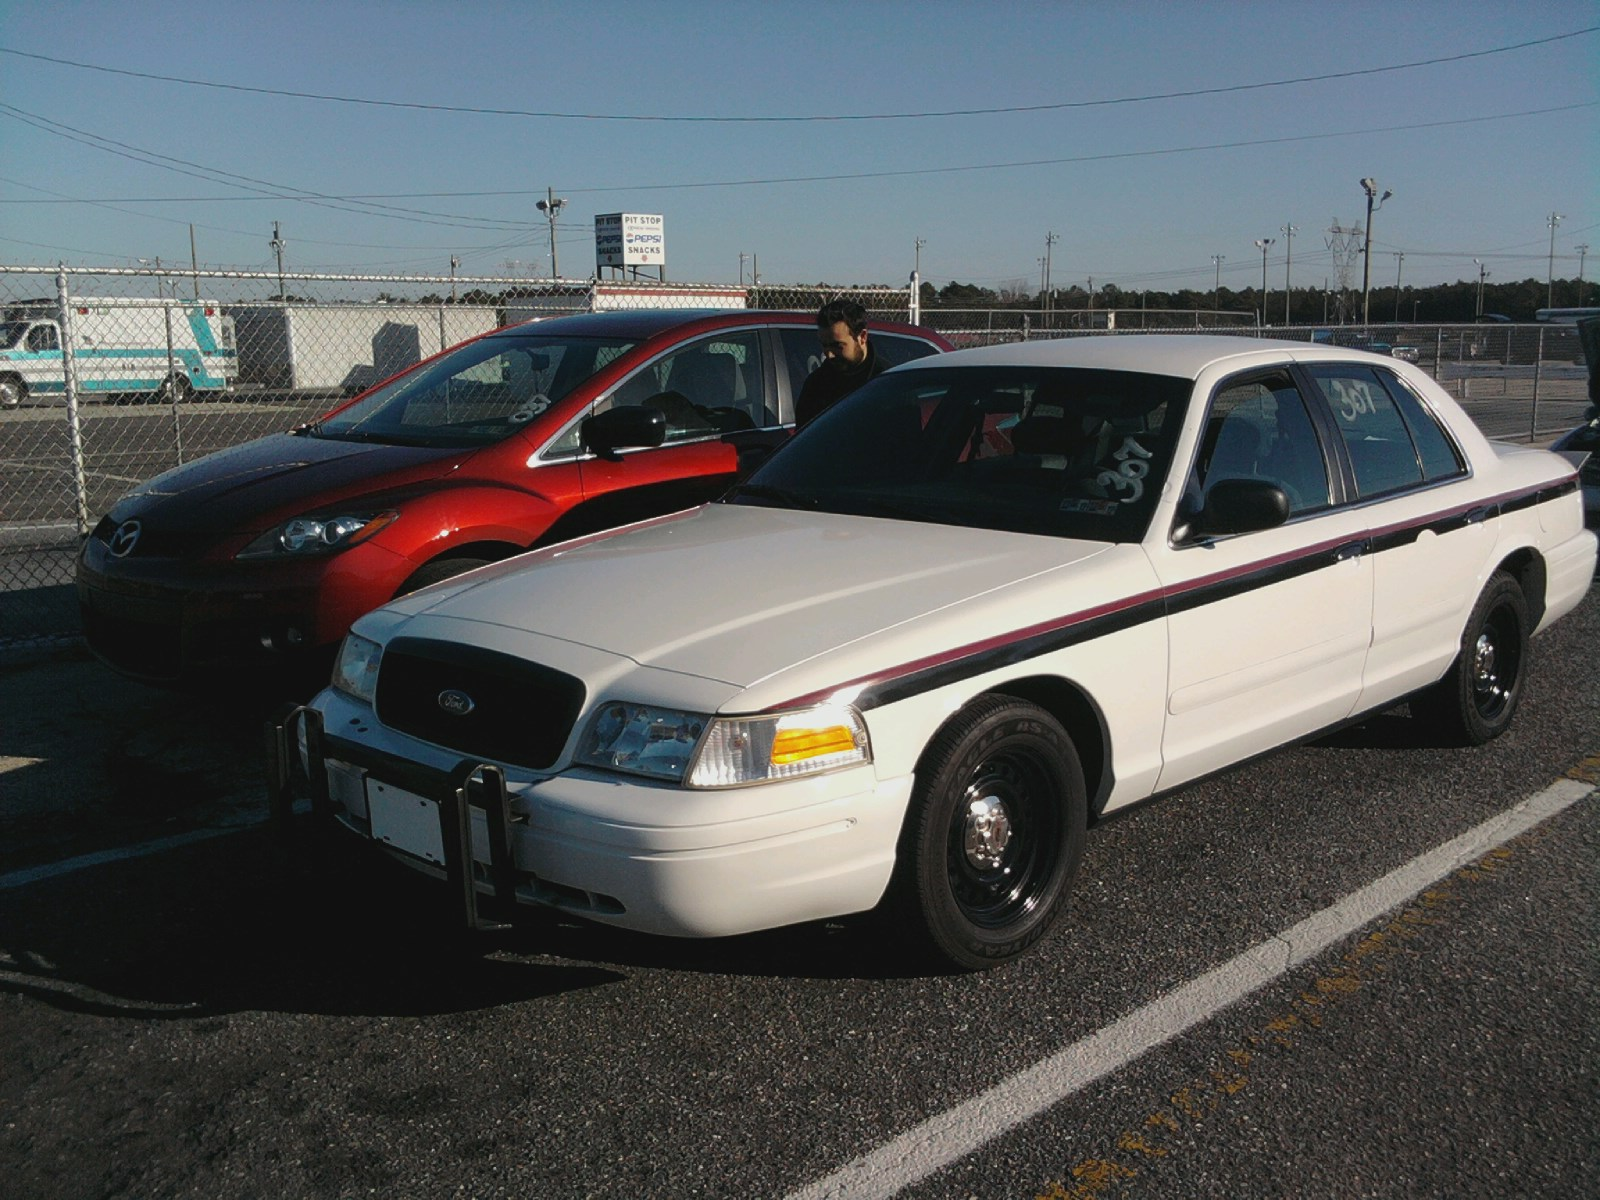 Used Police Cars For Sale In Pa >> Ford crown victoria p71 police package